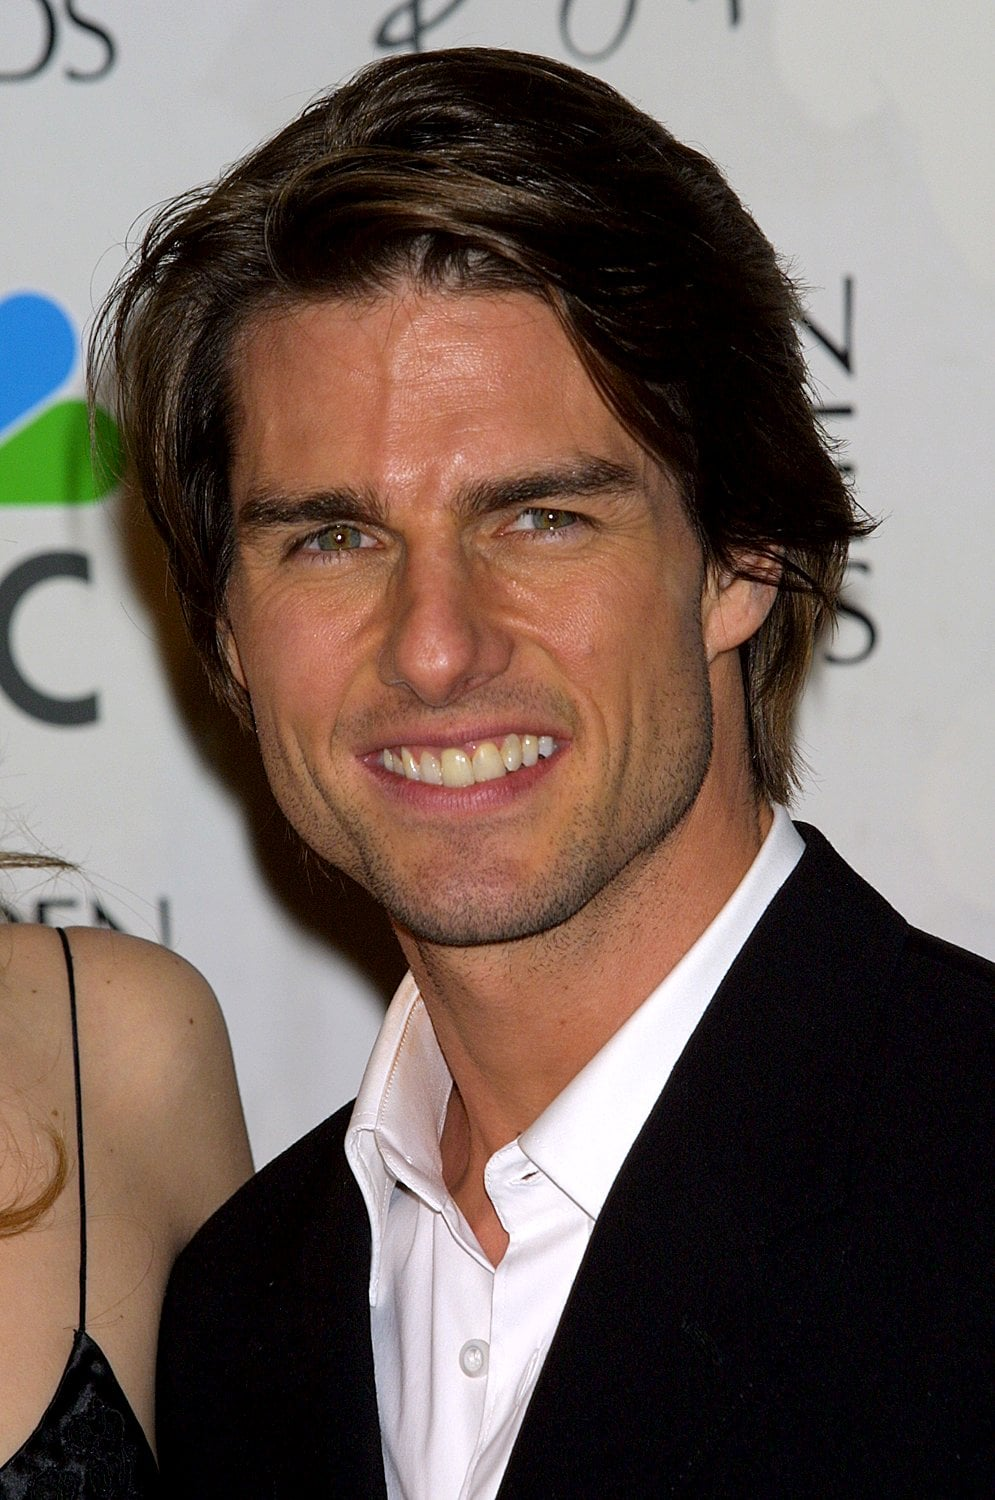 Tom Cruise looked happy at the Golden Globes in January 2001.